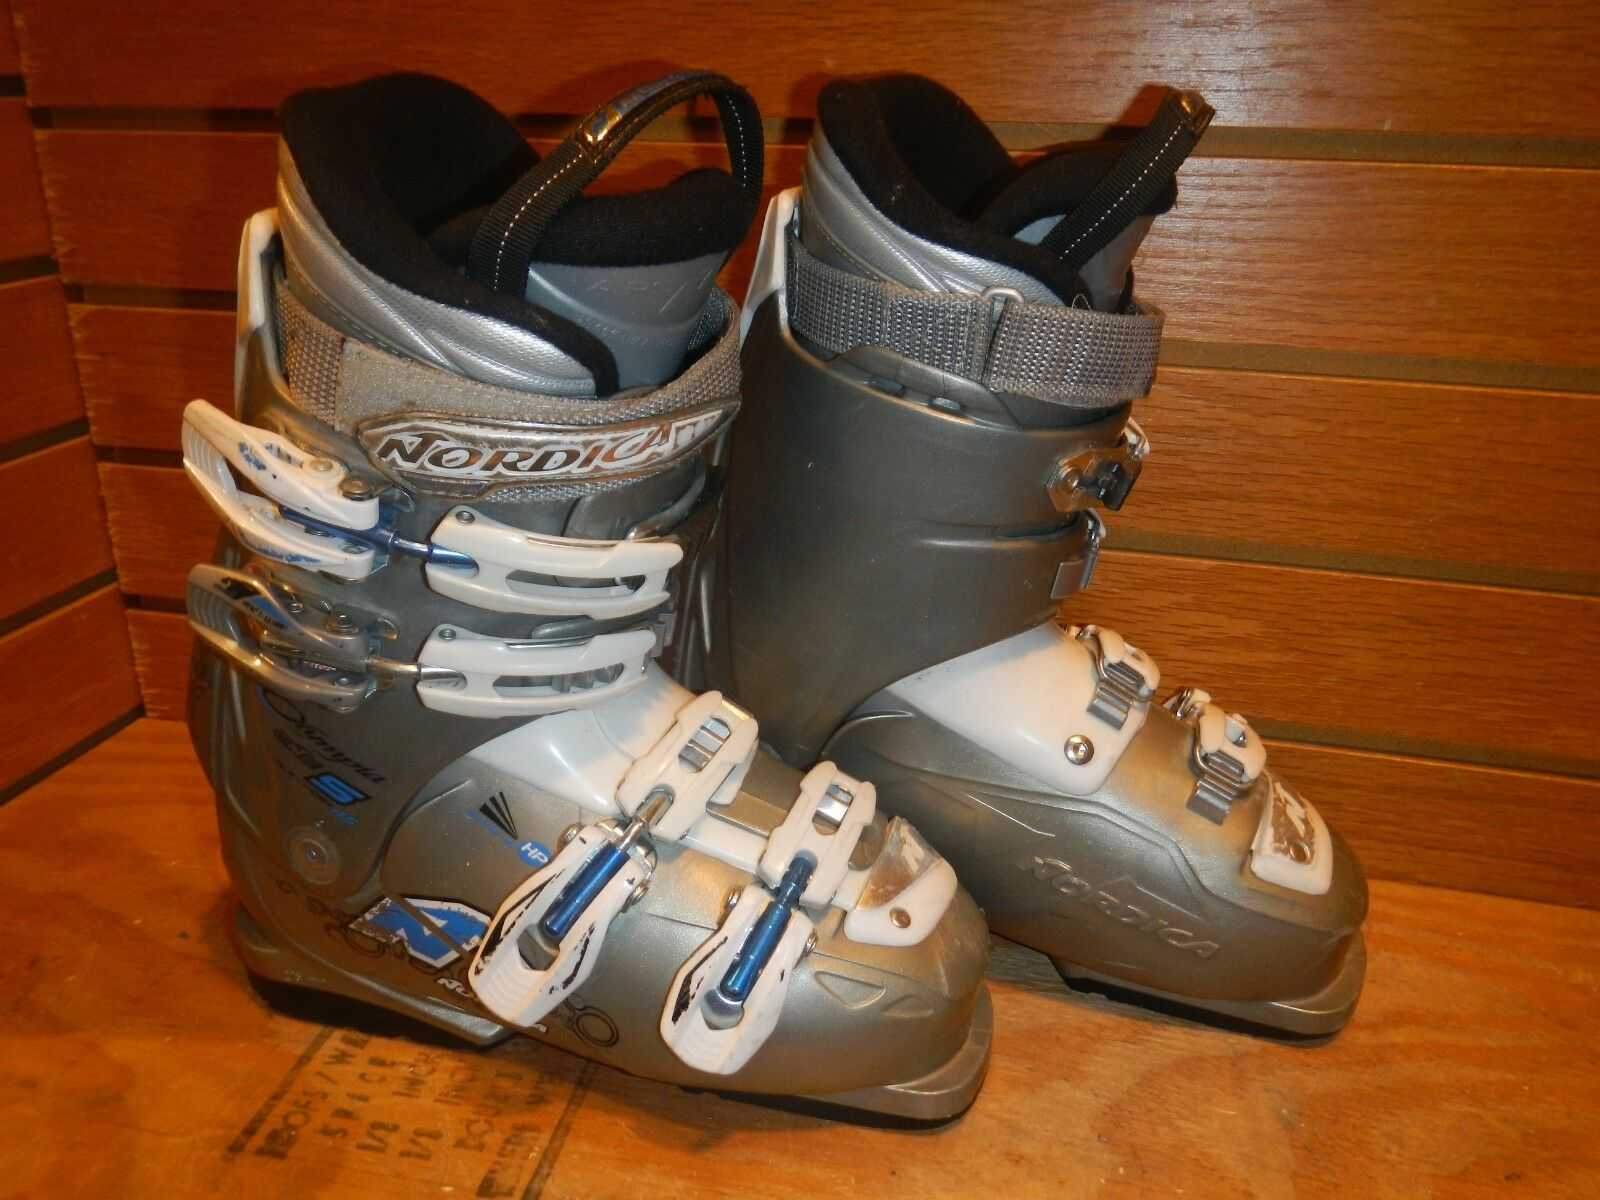 Nordica Olympia One  23.5 Women's ski boots - Lot 91  fitness retailer